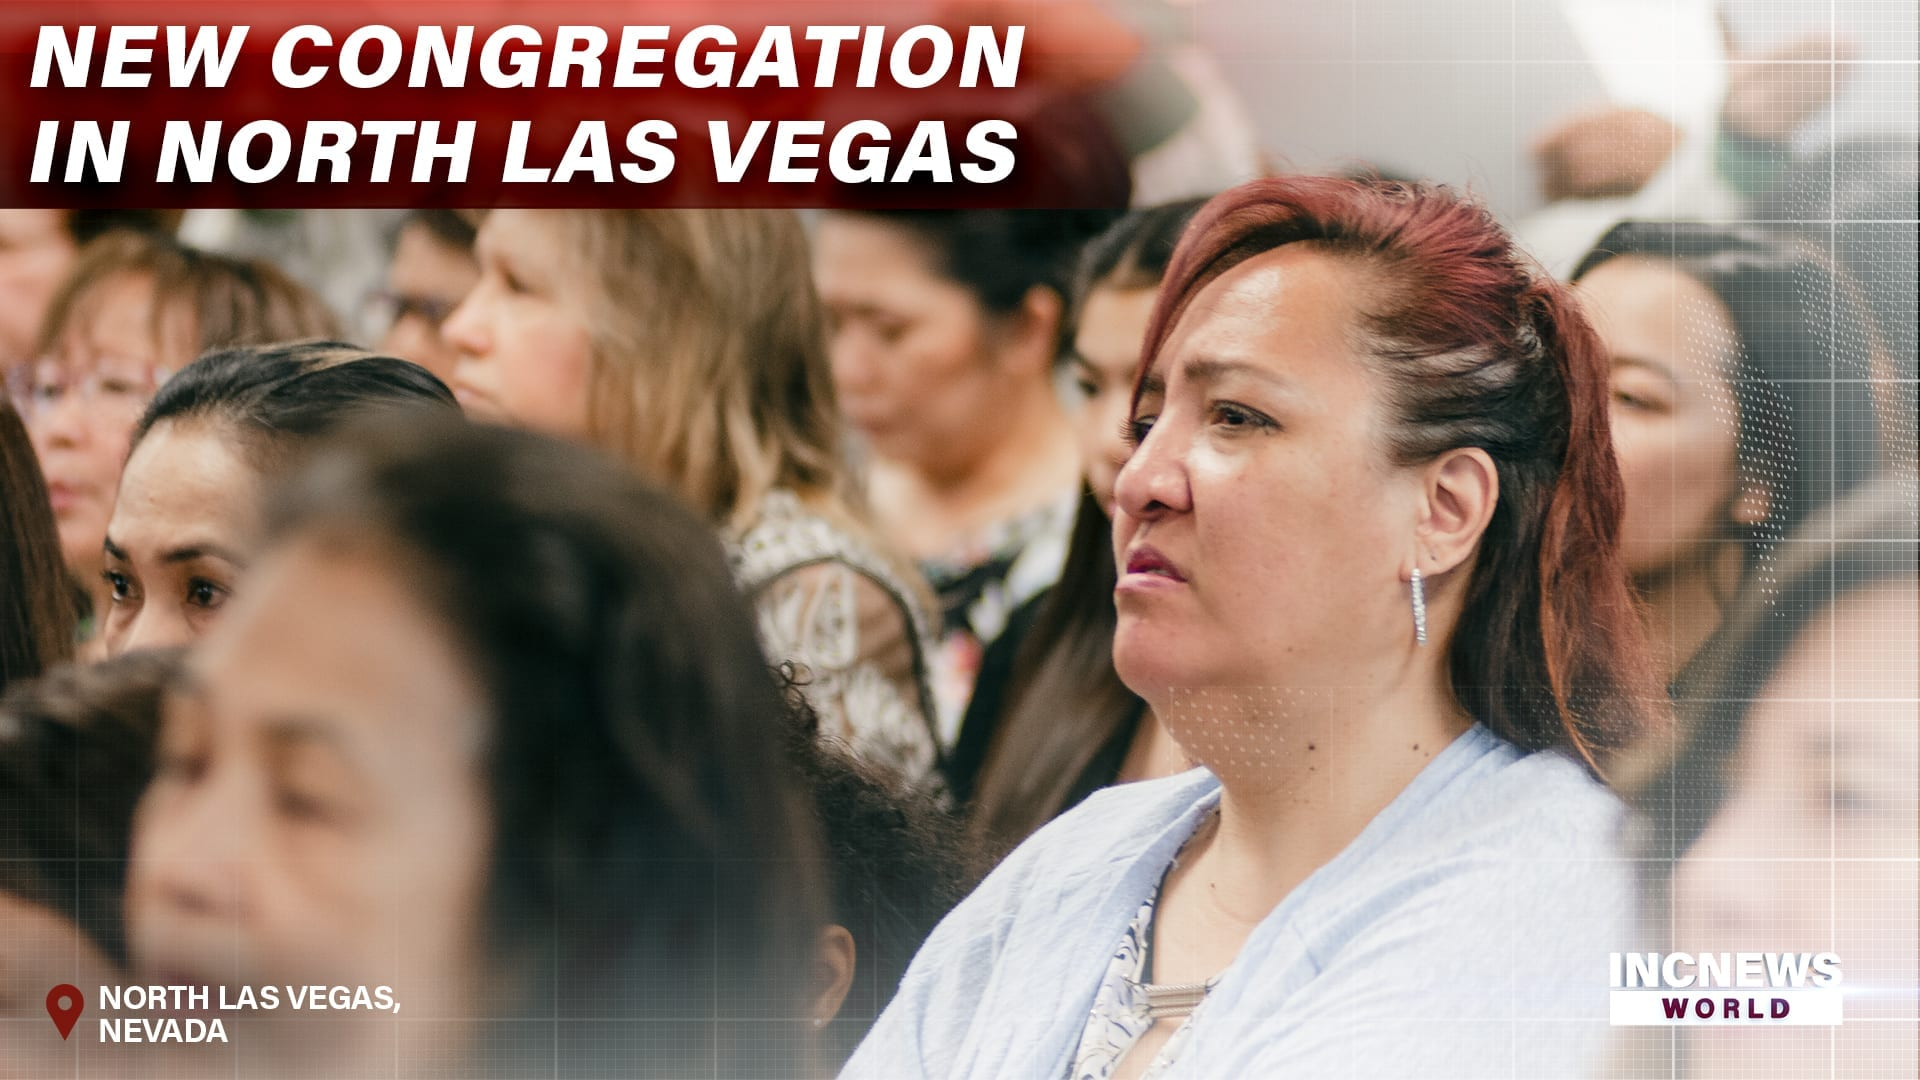 New Congregation in North Las Vegas